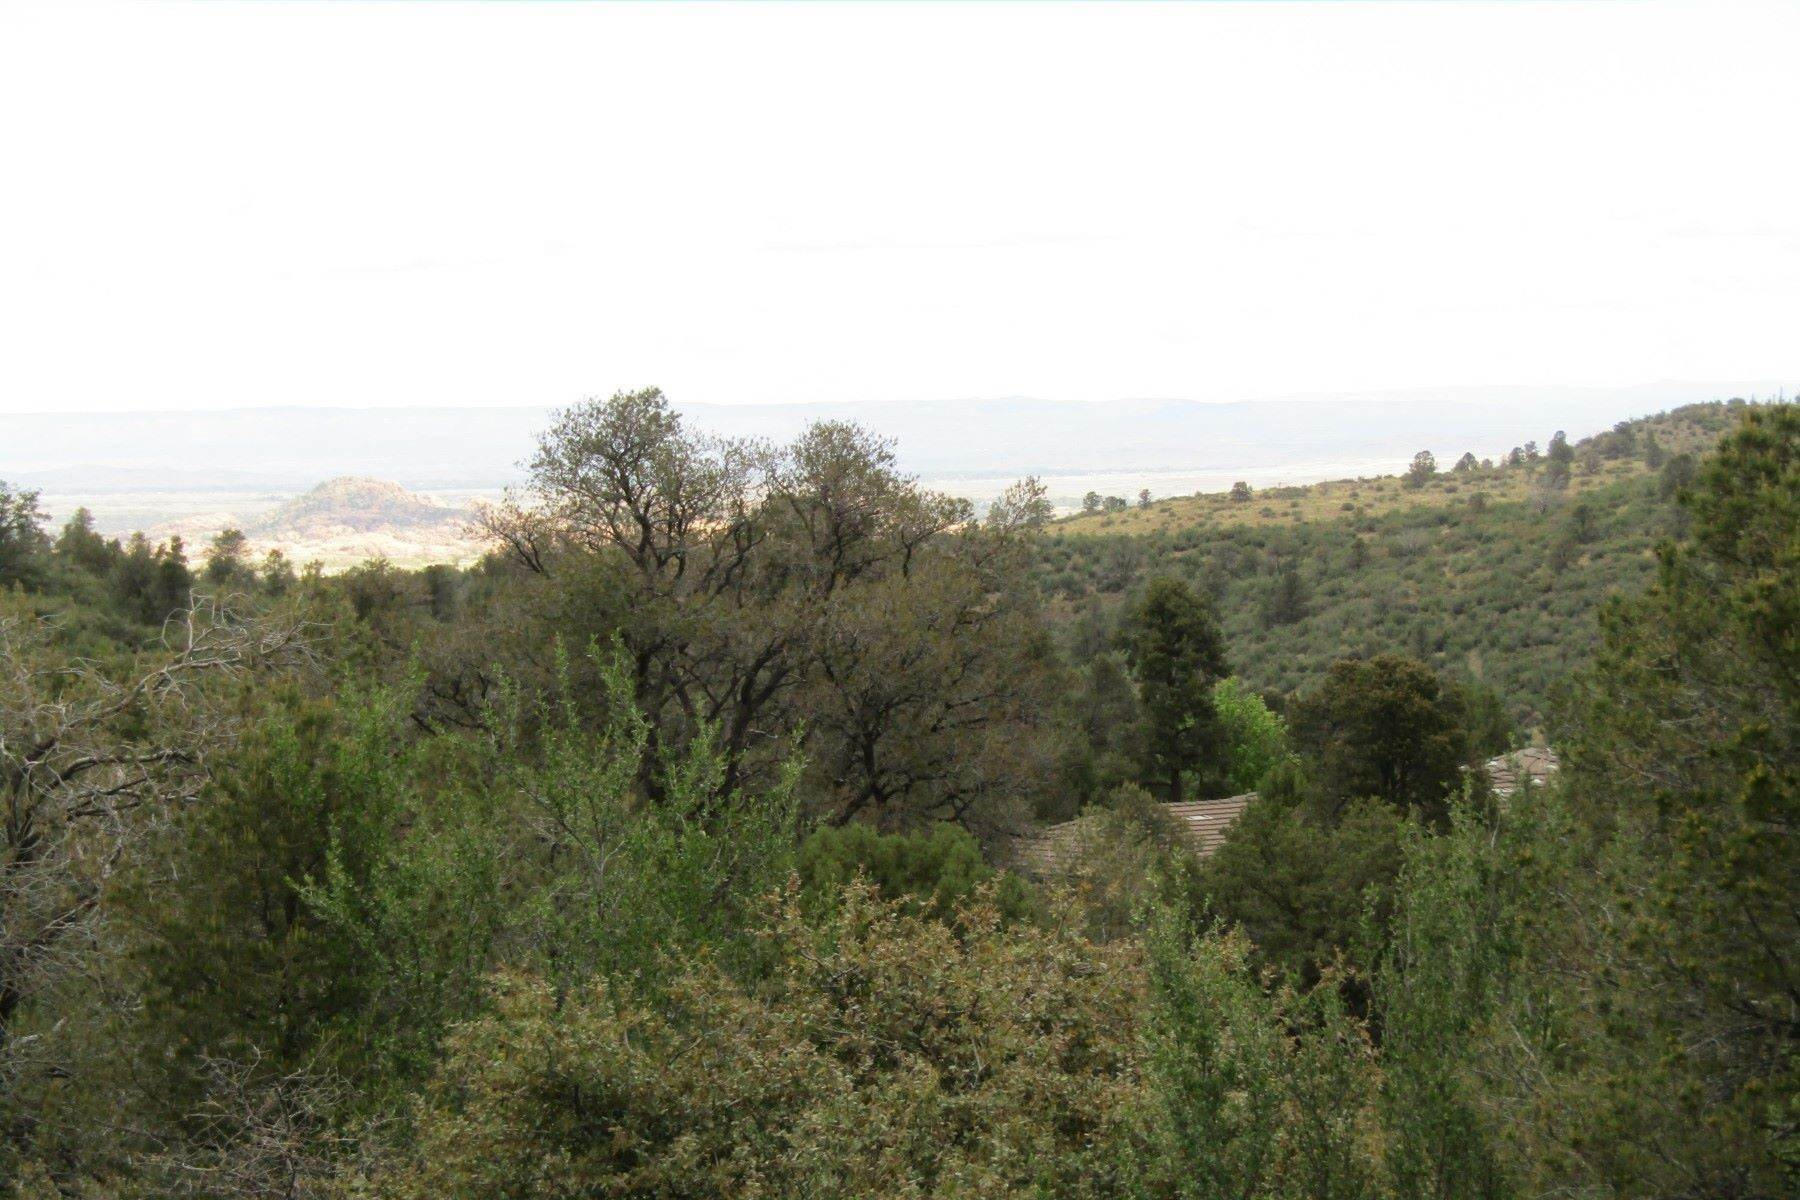 Land for Sale at The Ranch at Prescott 279 Sleepyglen Circle Prescott, Arizona 86303 United States